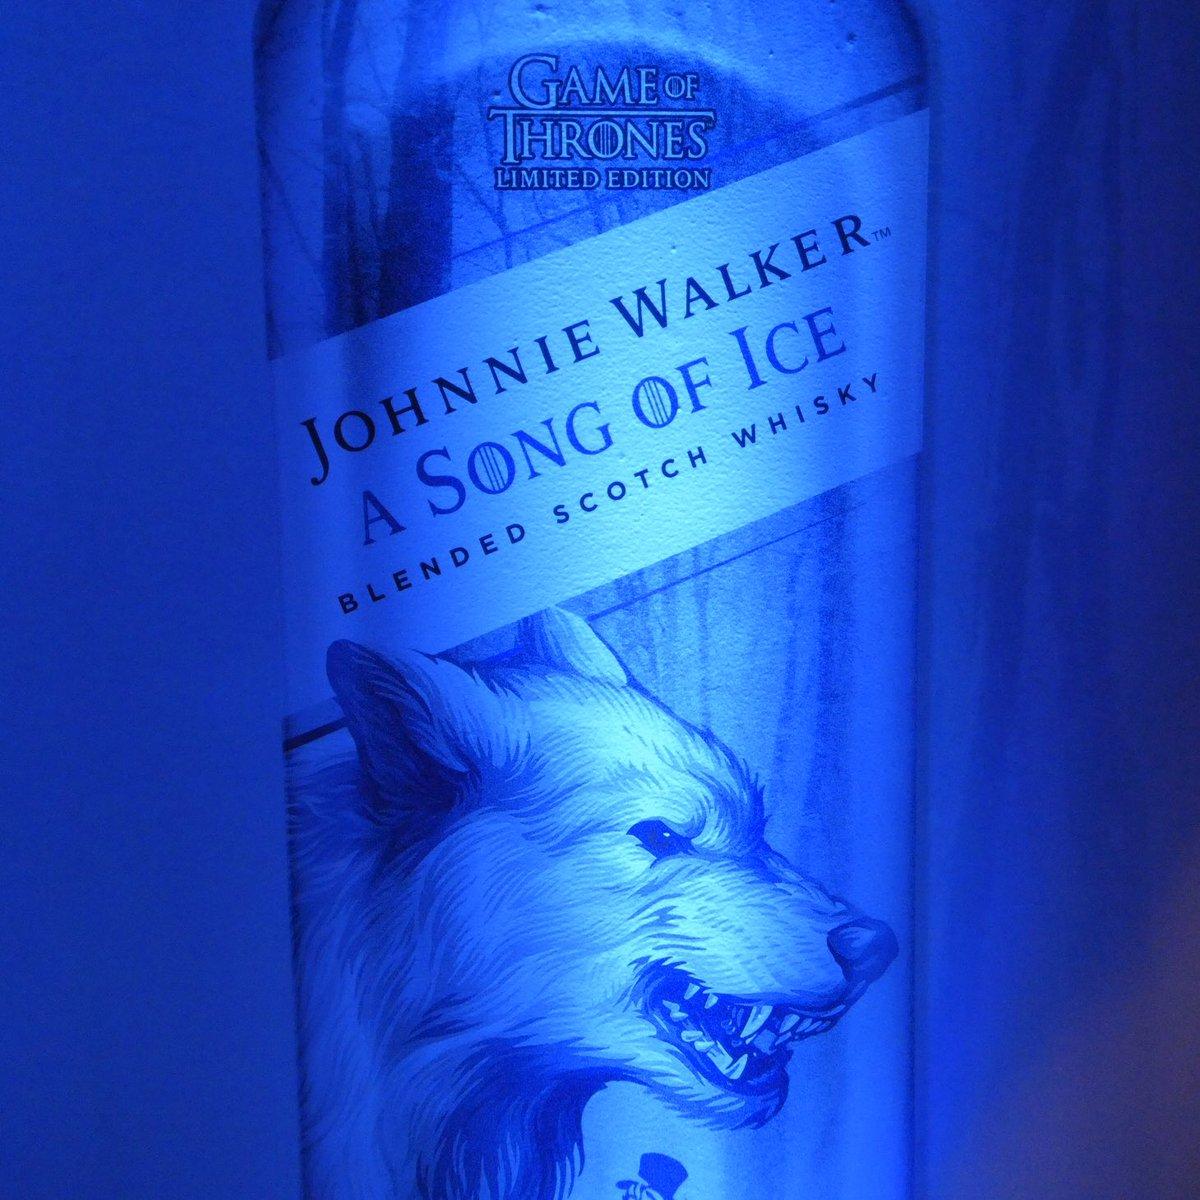 Johnnie Walker  Game of Thrones   A Song of Ice & A Song of Fire  #JWSongOfIce #JWSongOfFire #Scotch #Whisky @GameOfThrones #GameofThrones #HouseOfWalker #KeepWalking @JohnnieWalkerUS @Diageo_NA @NY_Comic_Con @comicconnyc<br>http://pic.twitter.com/l2mxlNuLKq